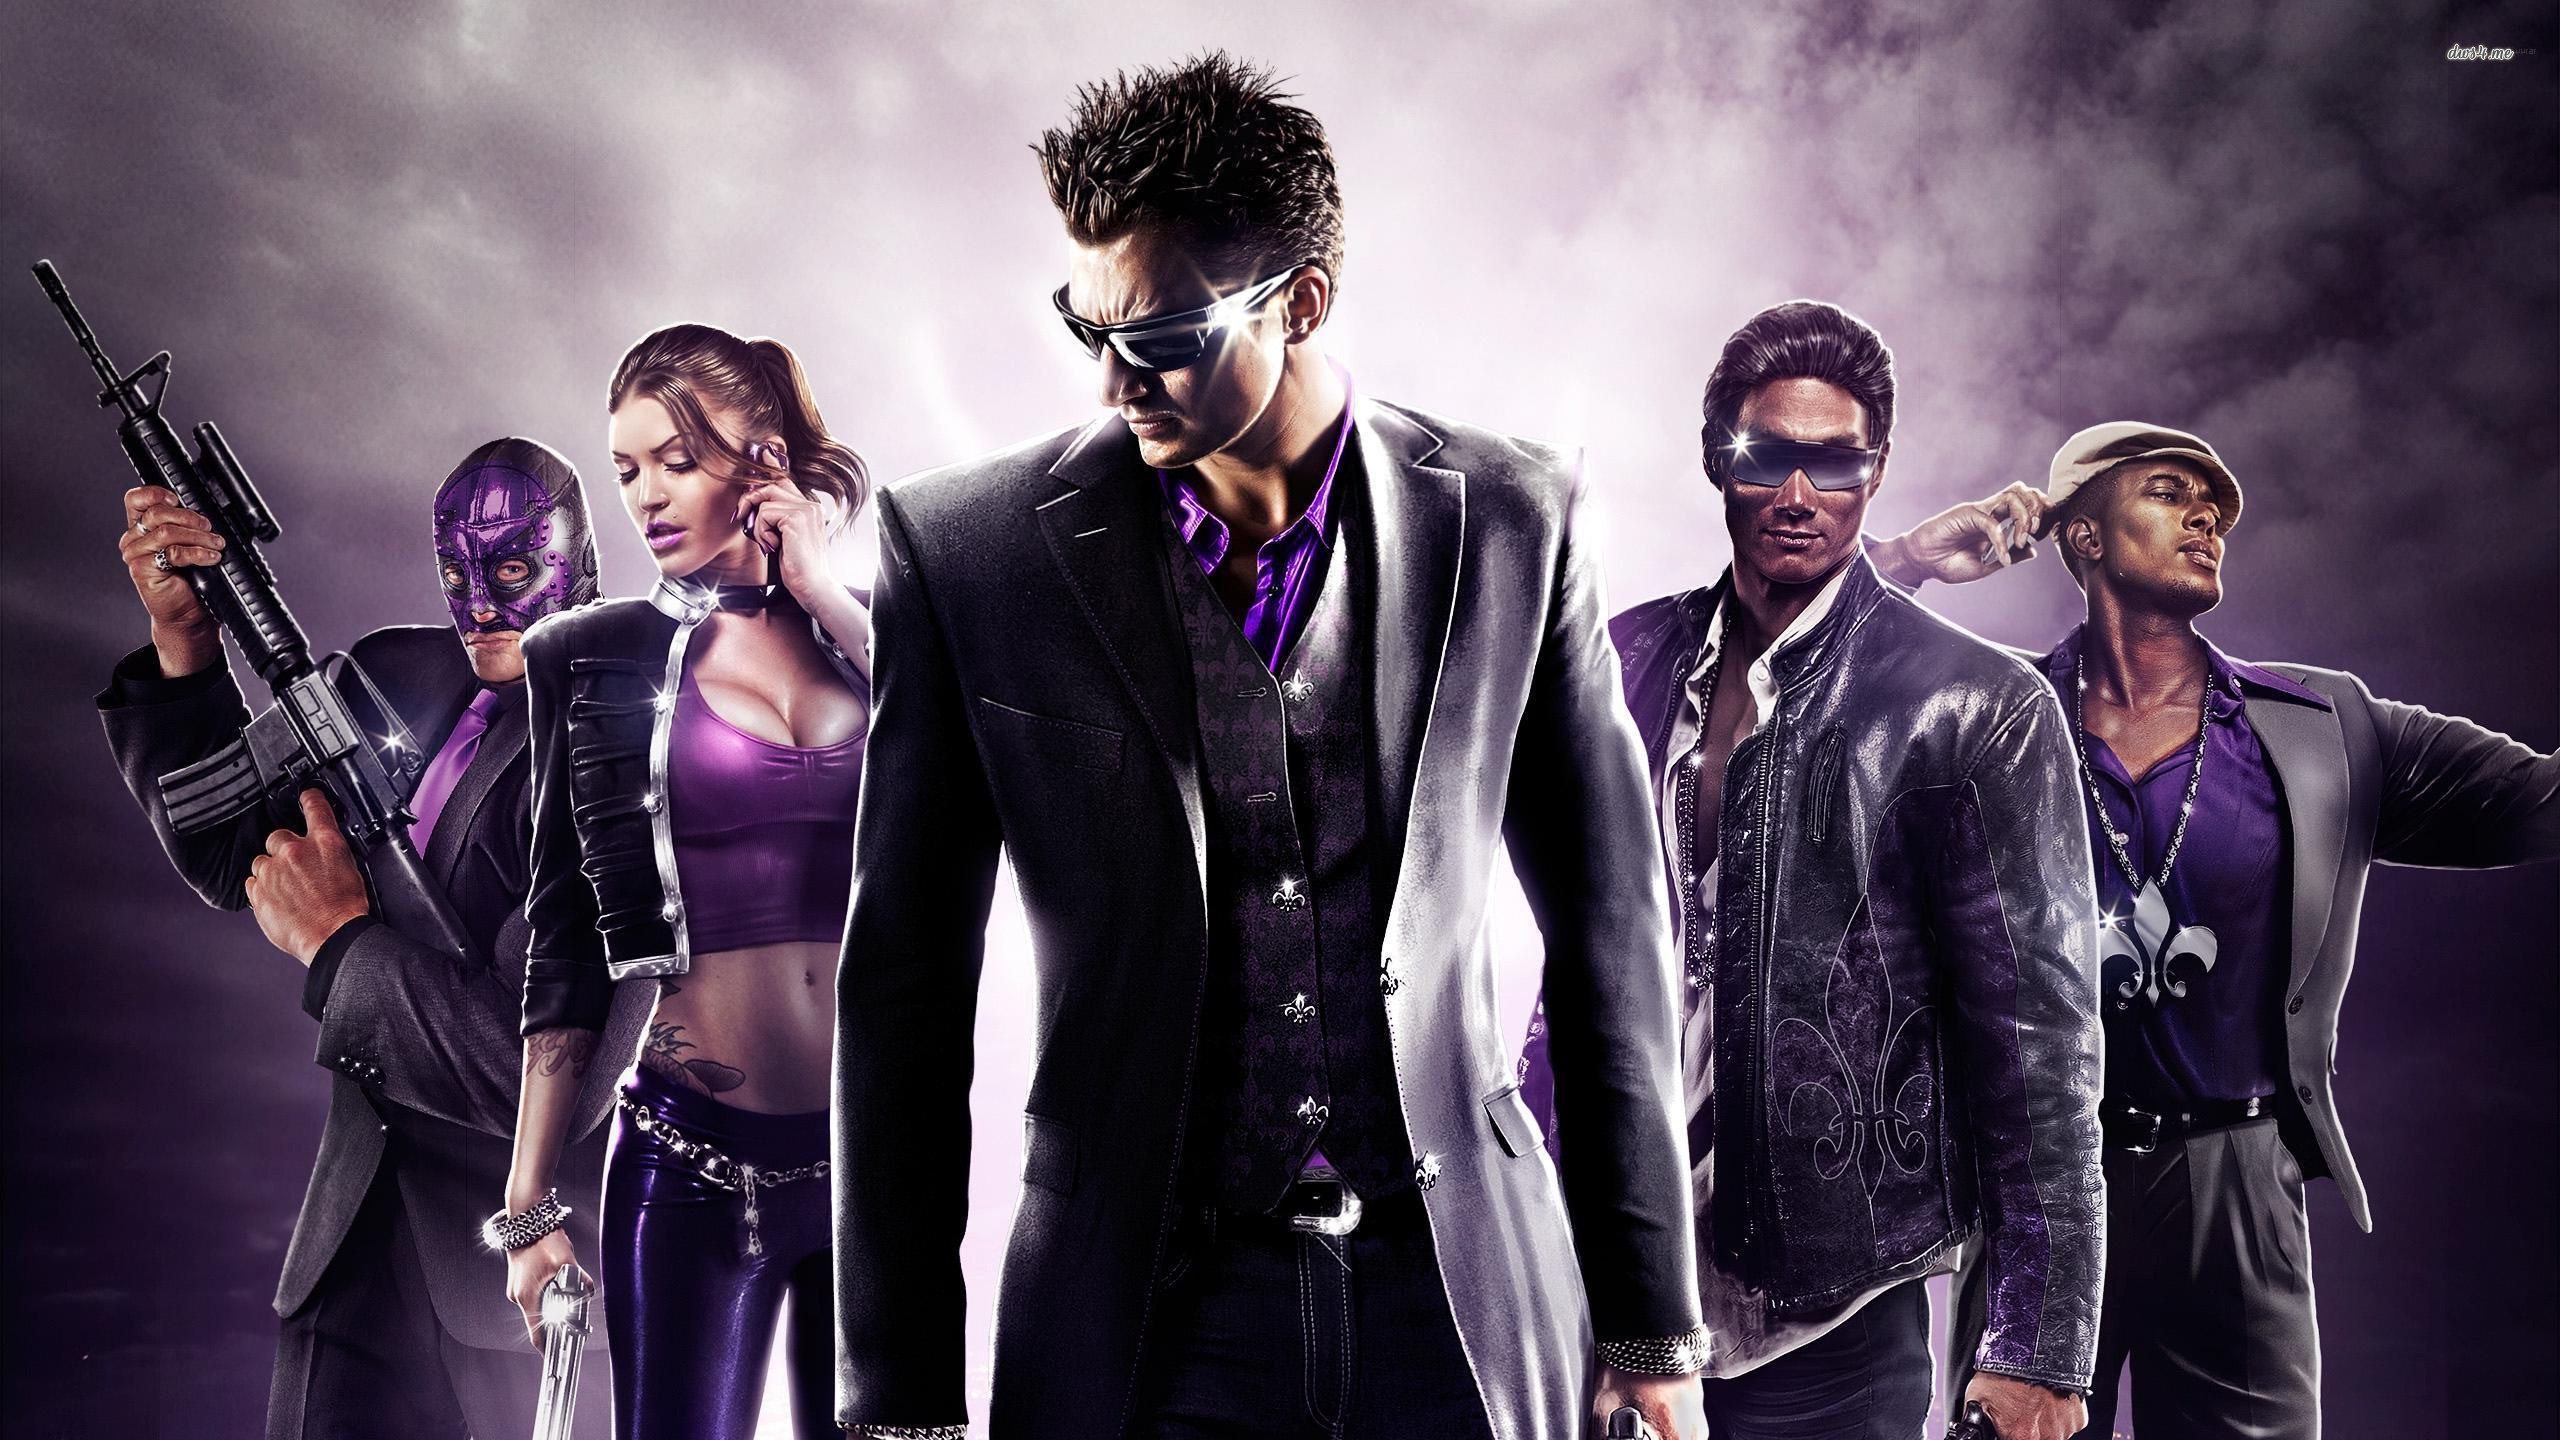 Saints Row Wallpaper 70 Images